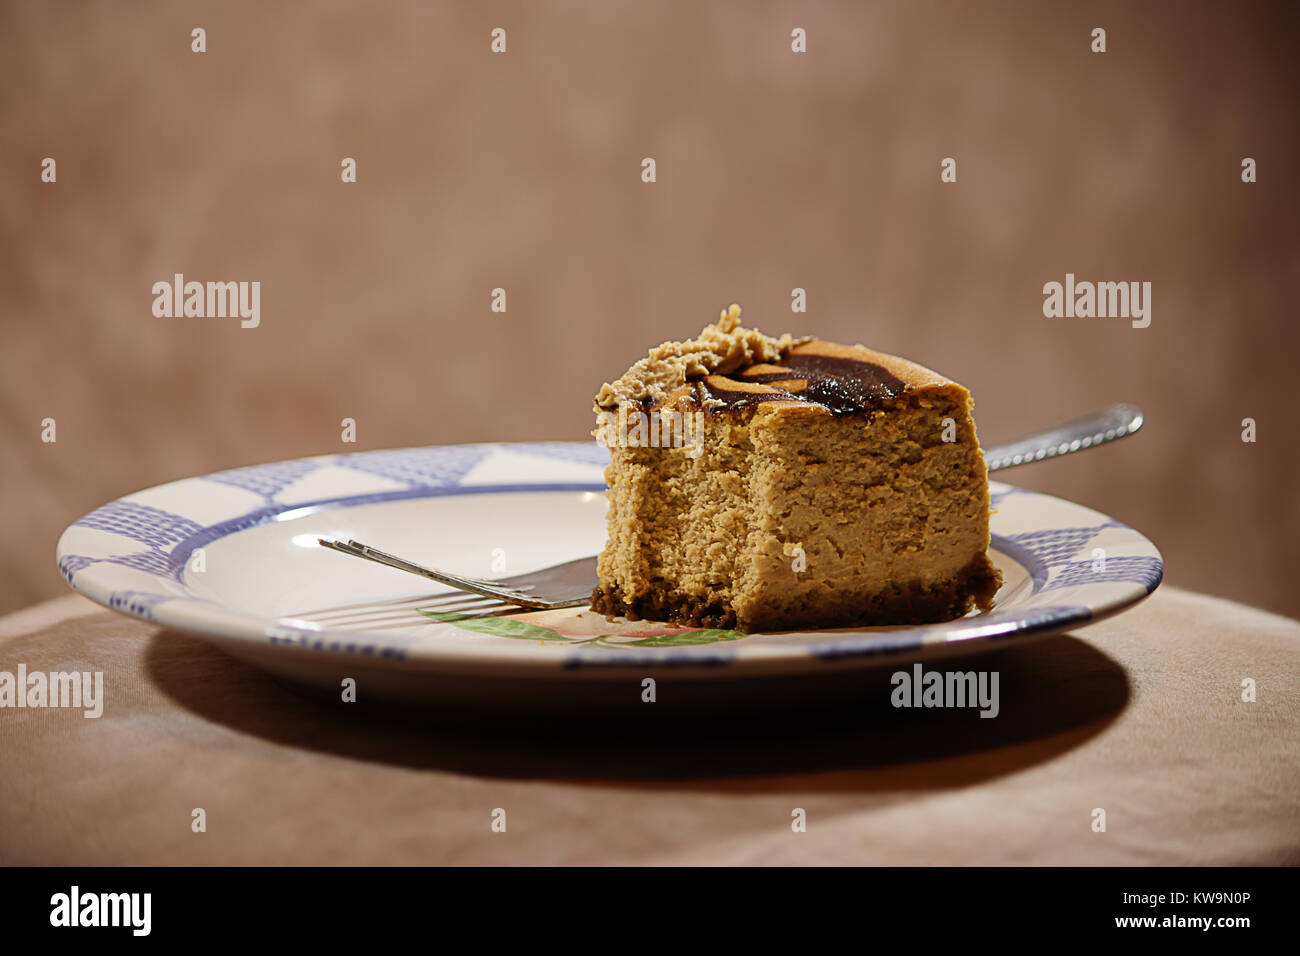 piece of pumpkin cheesecake against brown background - Stock Image